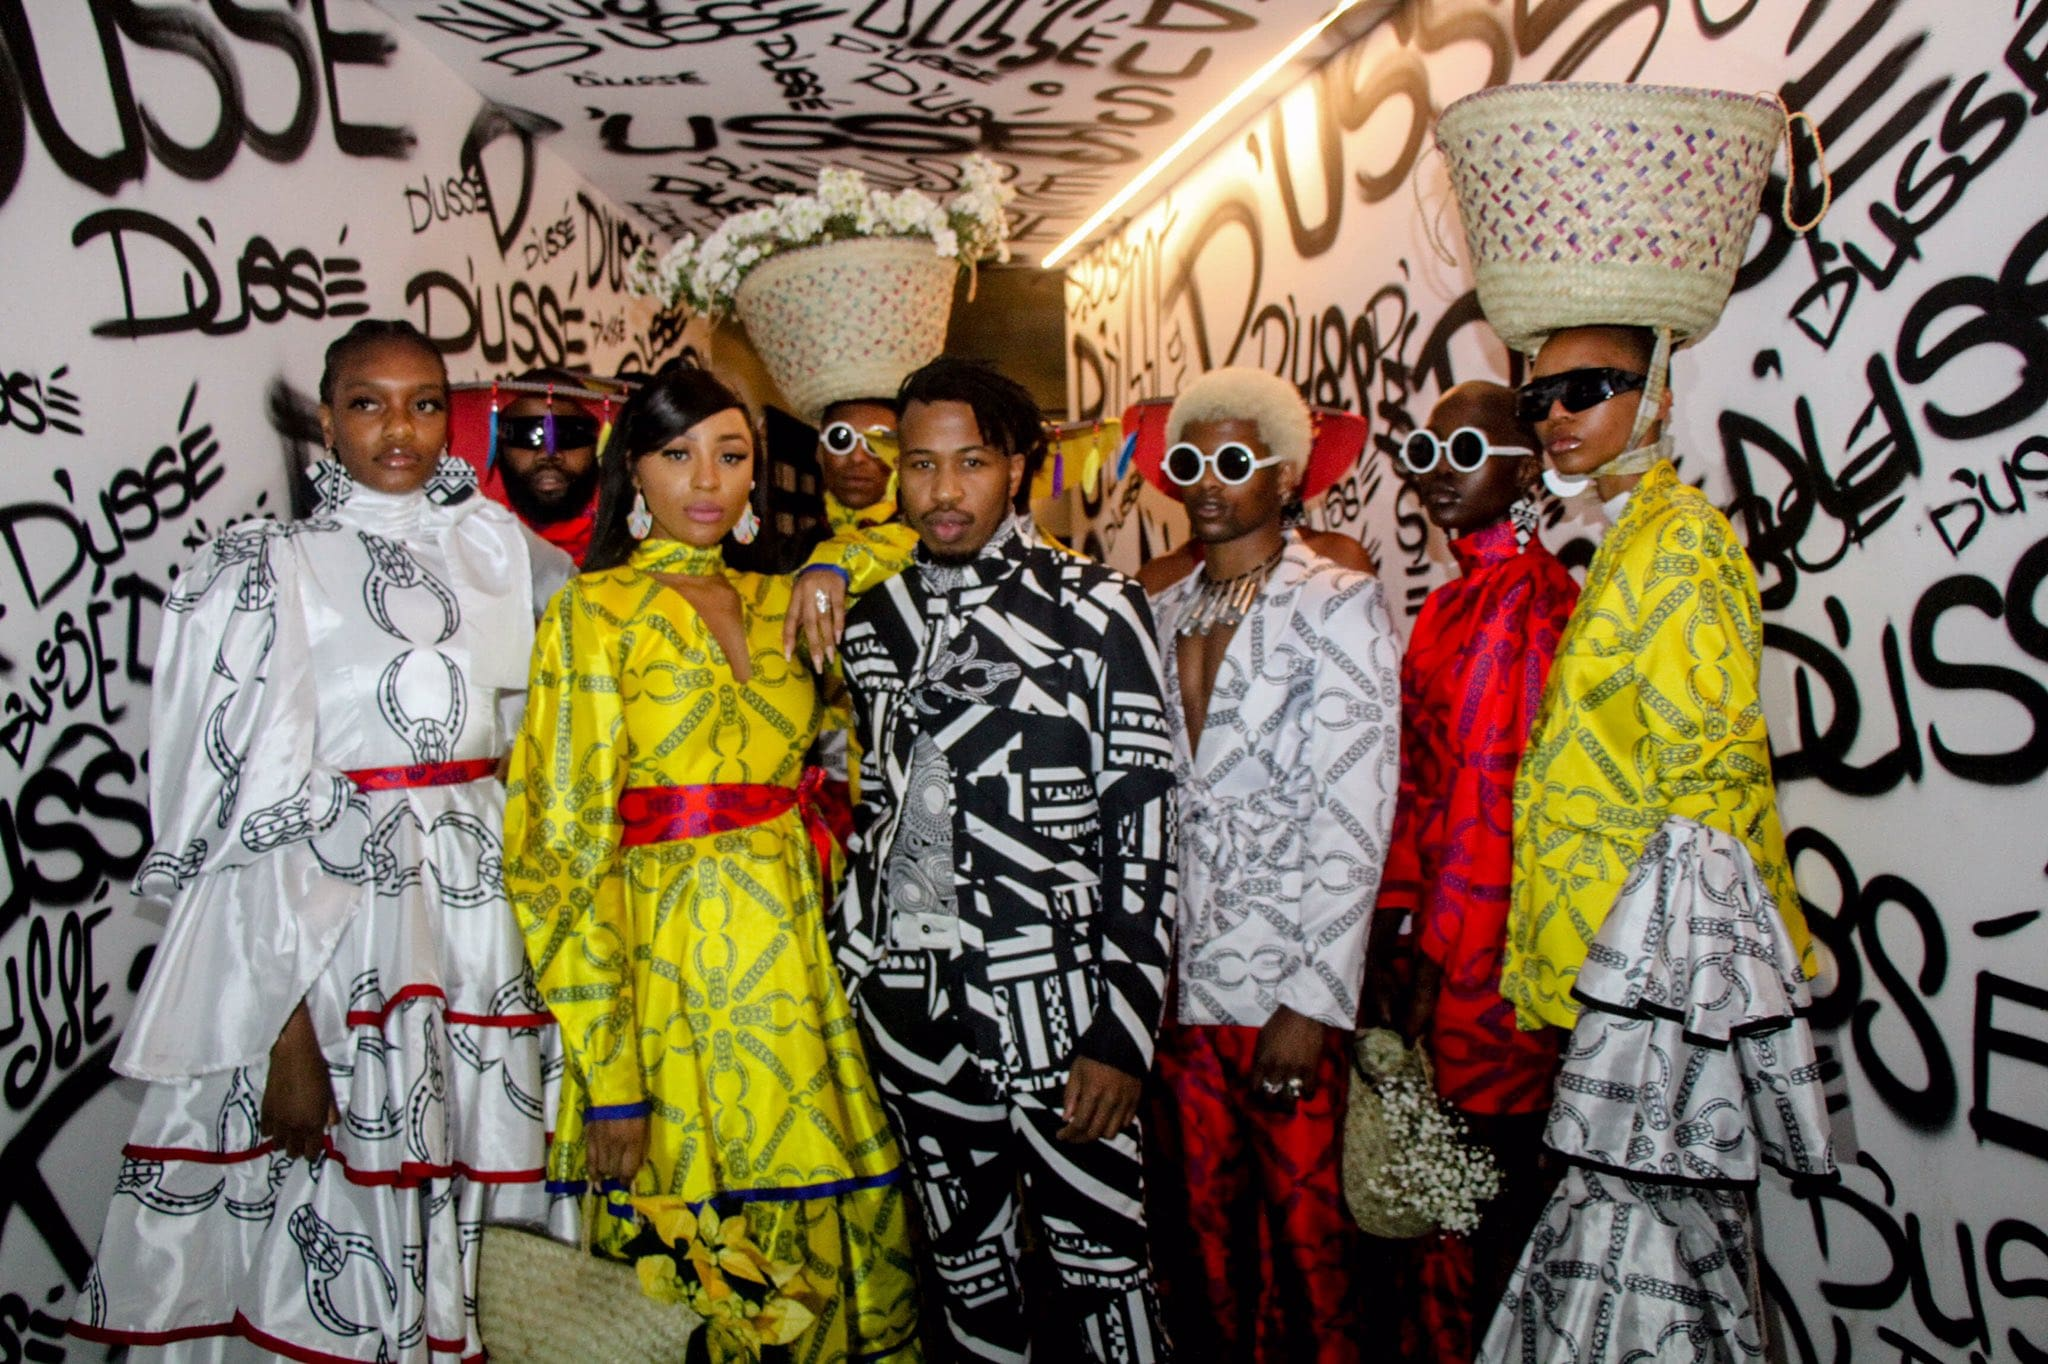 South Africa fashion is going local, and it's a good thing